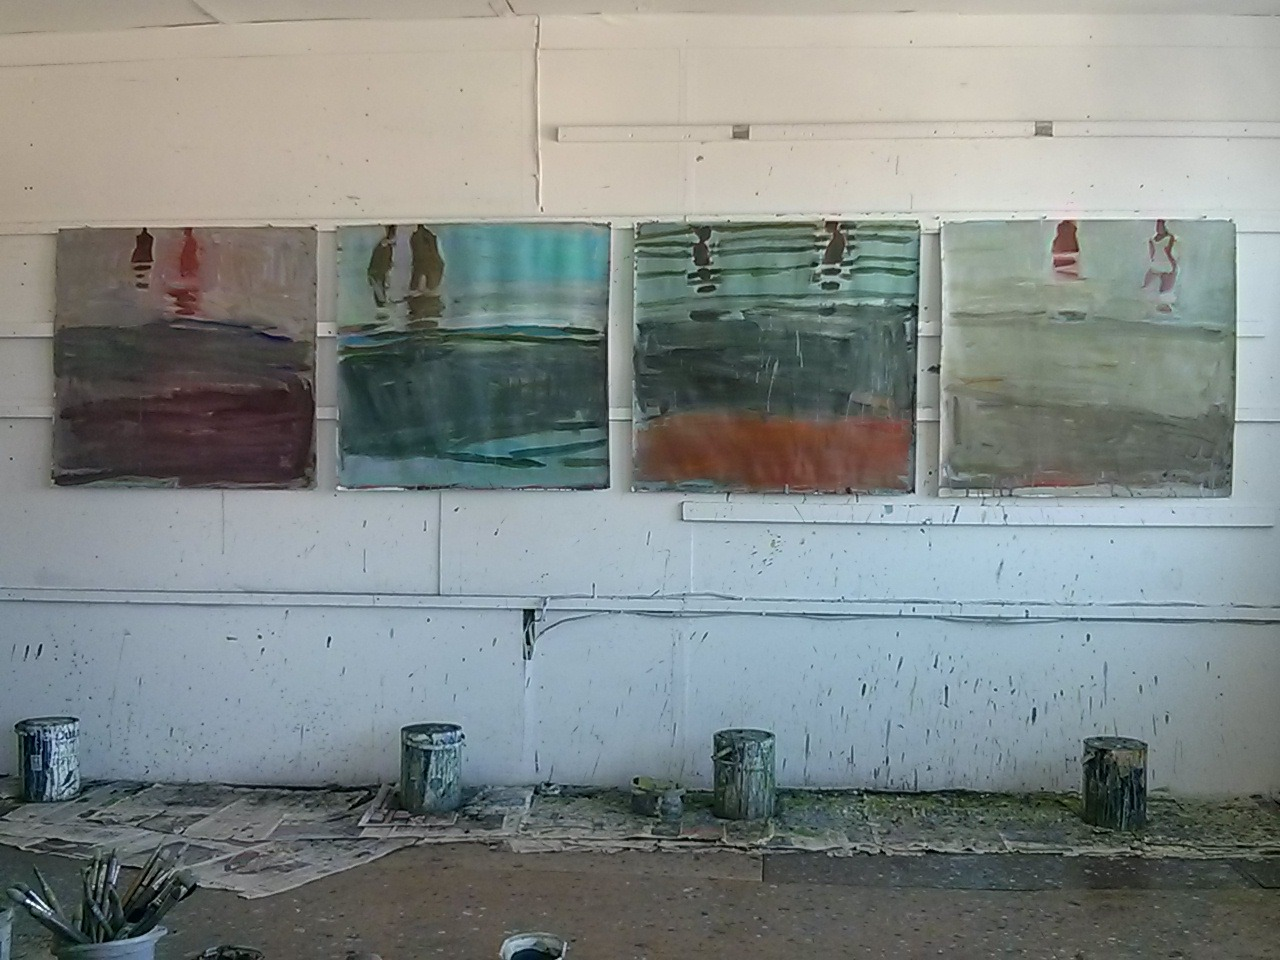 These are some of the new paintings of people swimming that I have been working on. Since the photograph I have made changes to the centre two paintings, especially number 3 which I left in a state of flux when I finished this evening…